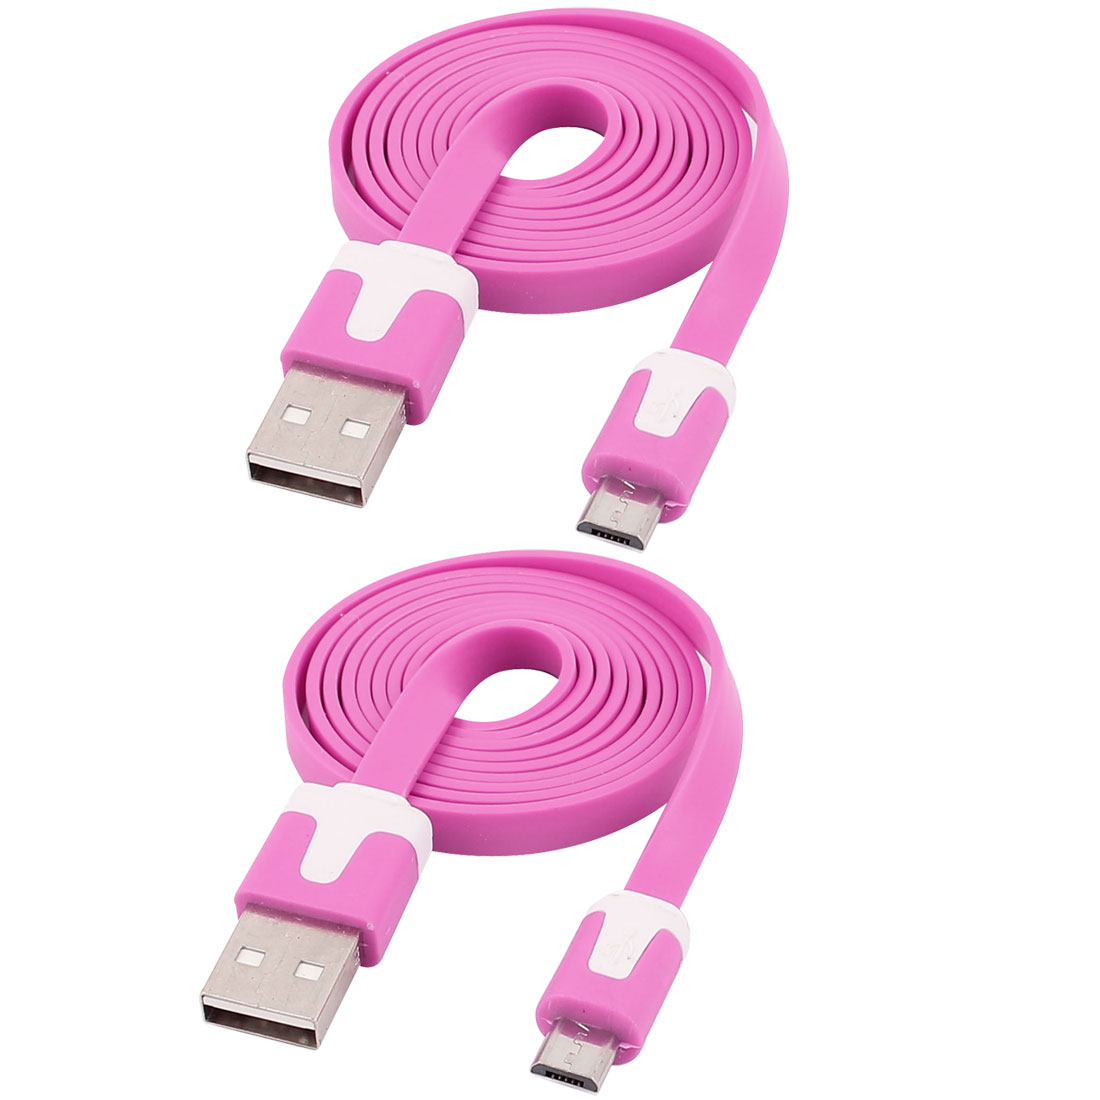 1M Long USB A to Micro 5 Pin Male M/M Noodles Design Data Charger Cable Line Fuchsia 2pcs